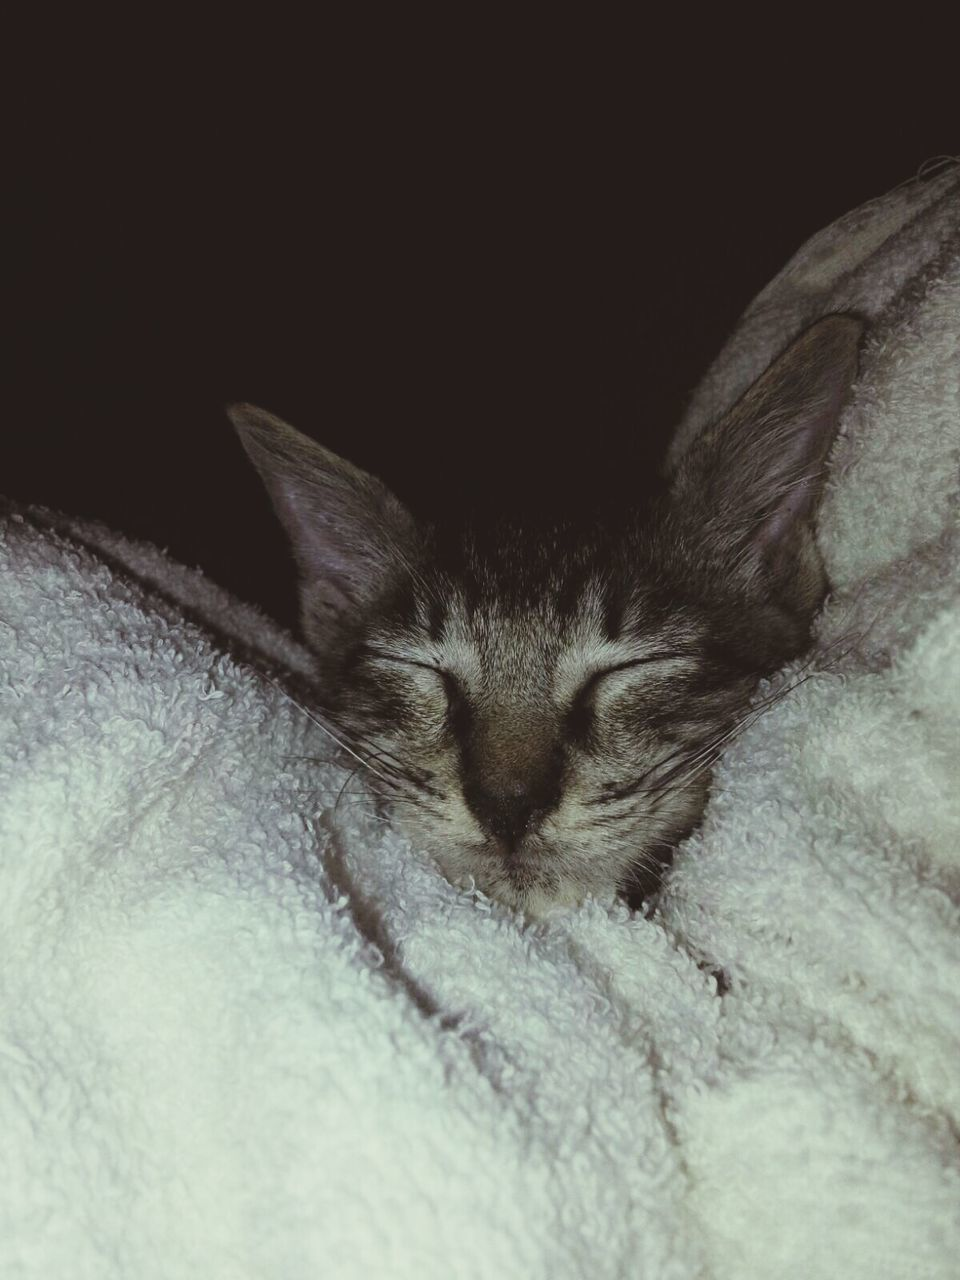 domestic cat, one animal, pets, animal themes, domestic animals, mammal, eyes closed, feline, sleeping, cat, relaxation, indoors, bed, home interior, lying down, no people, close-up, day